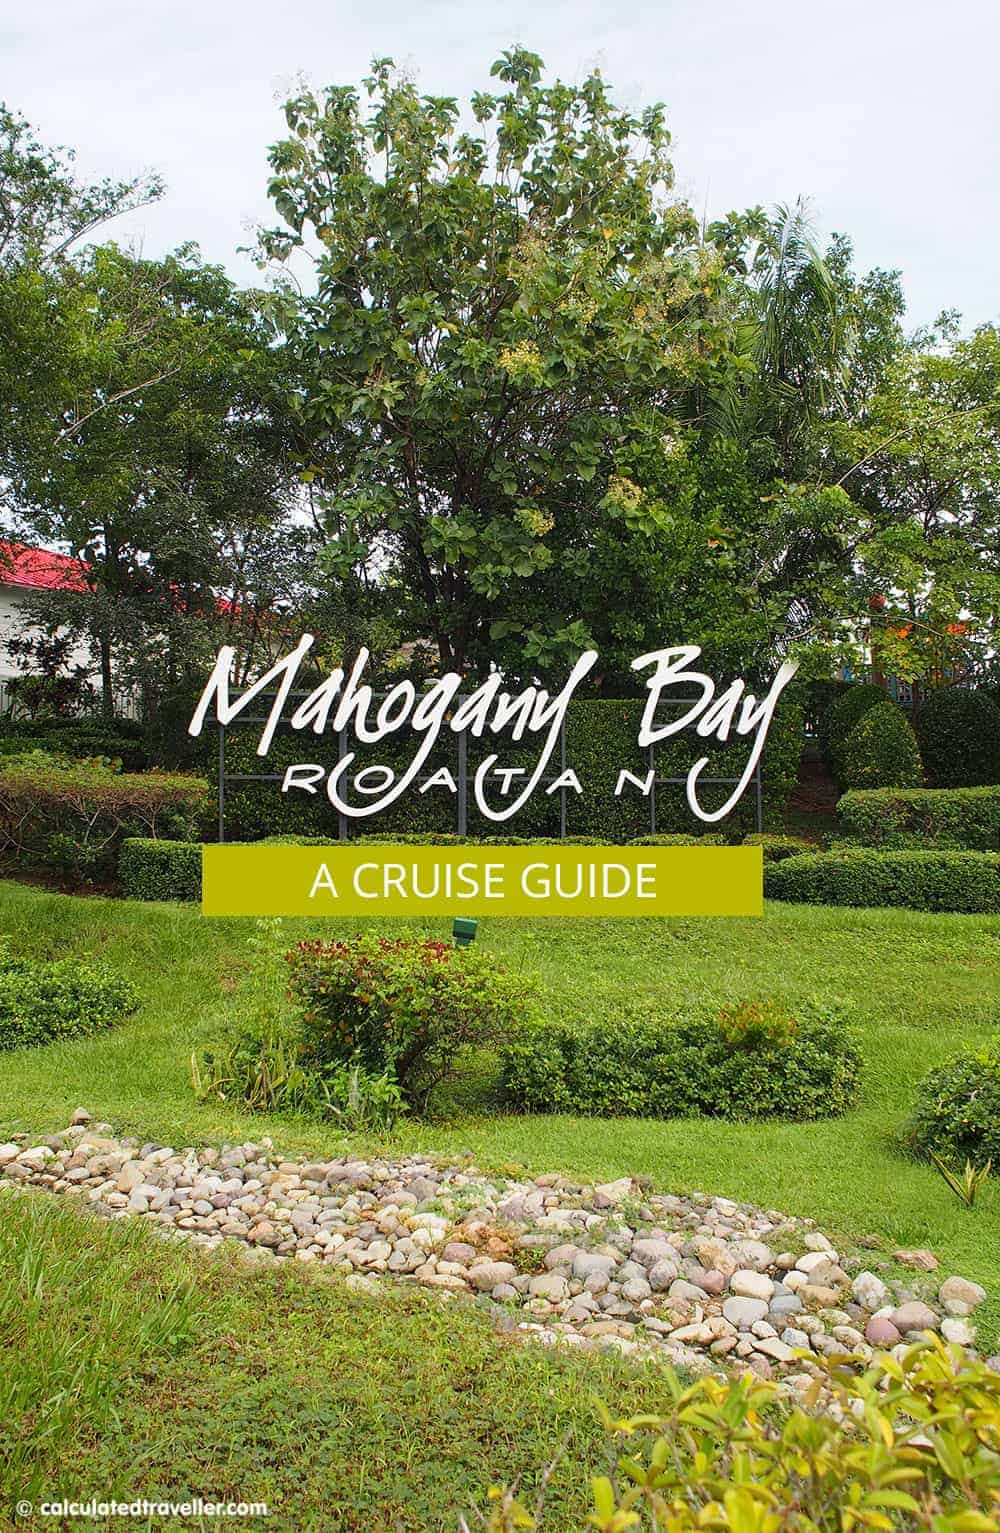 A Cruise Guide to Mahogany Bay Roatan Honduras by Calculated Traveller Magazine | #cruise #port #Roatan #Honduras #guide